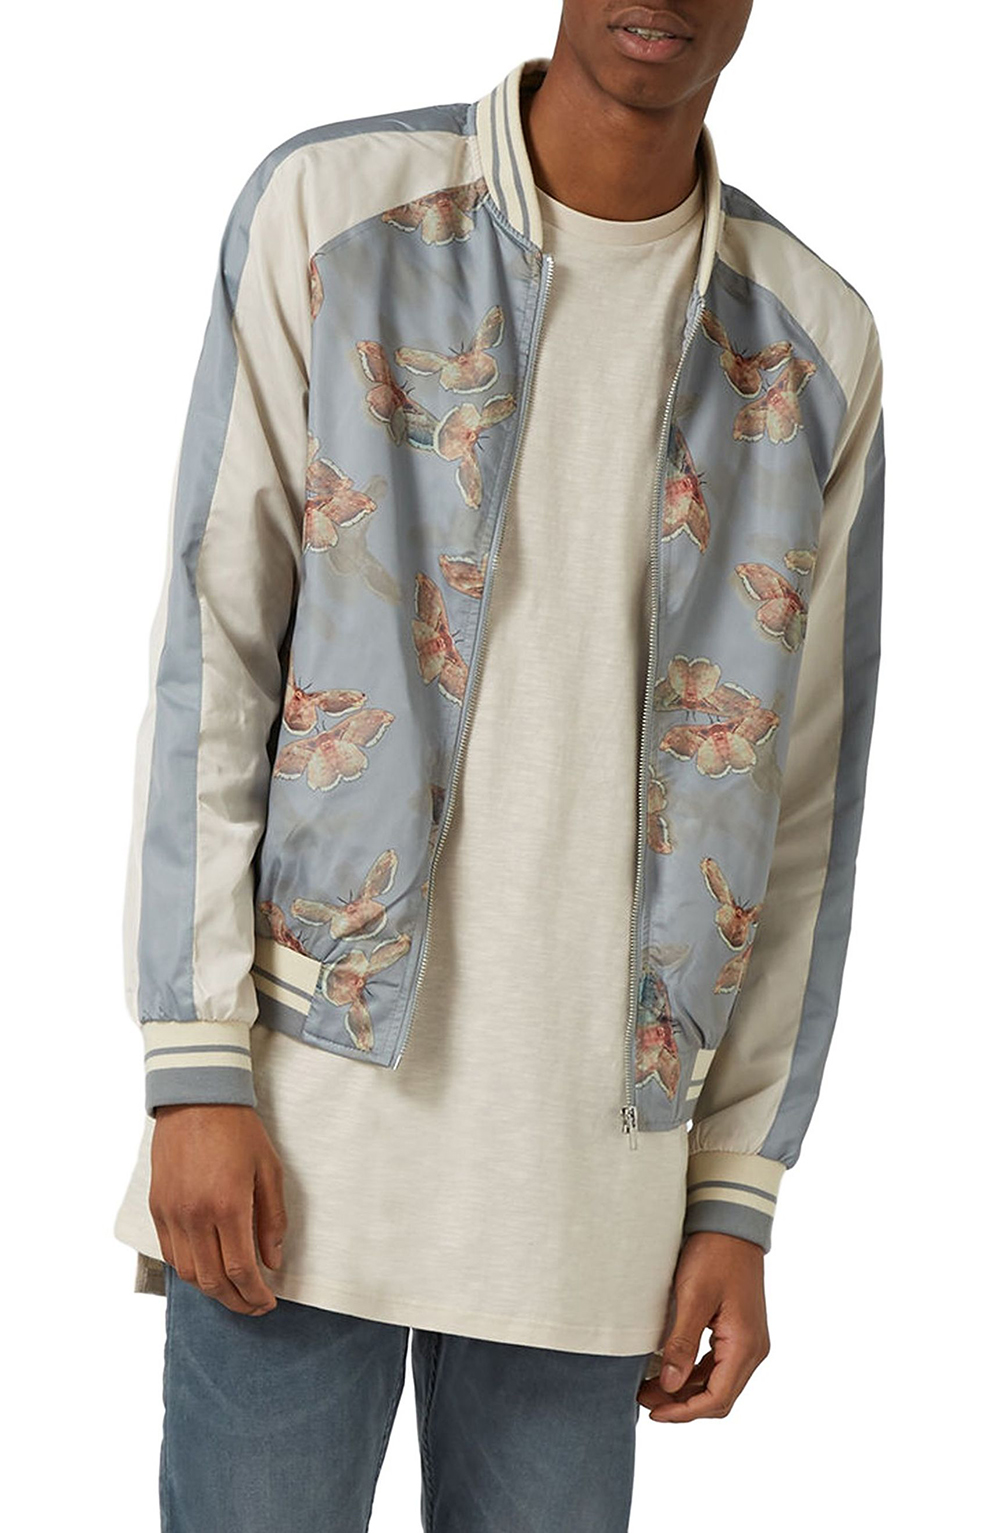 25ac91ee Topman Moth Print Souvenir Bomber Jacket - Spring Menswear: Button Downs  and Bomber Jackets